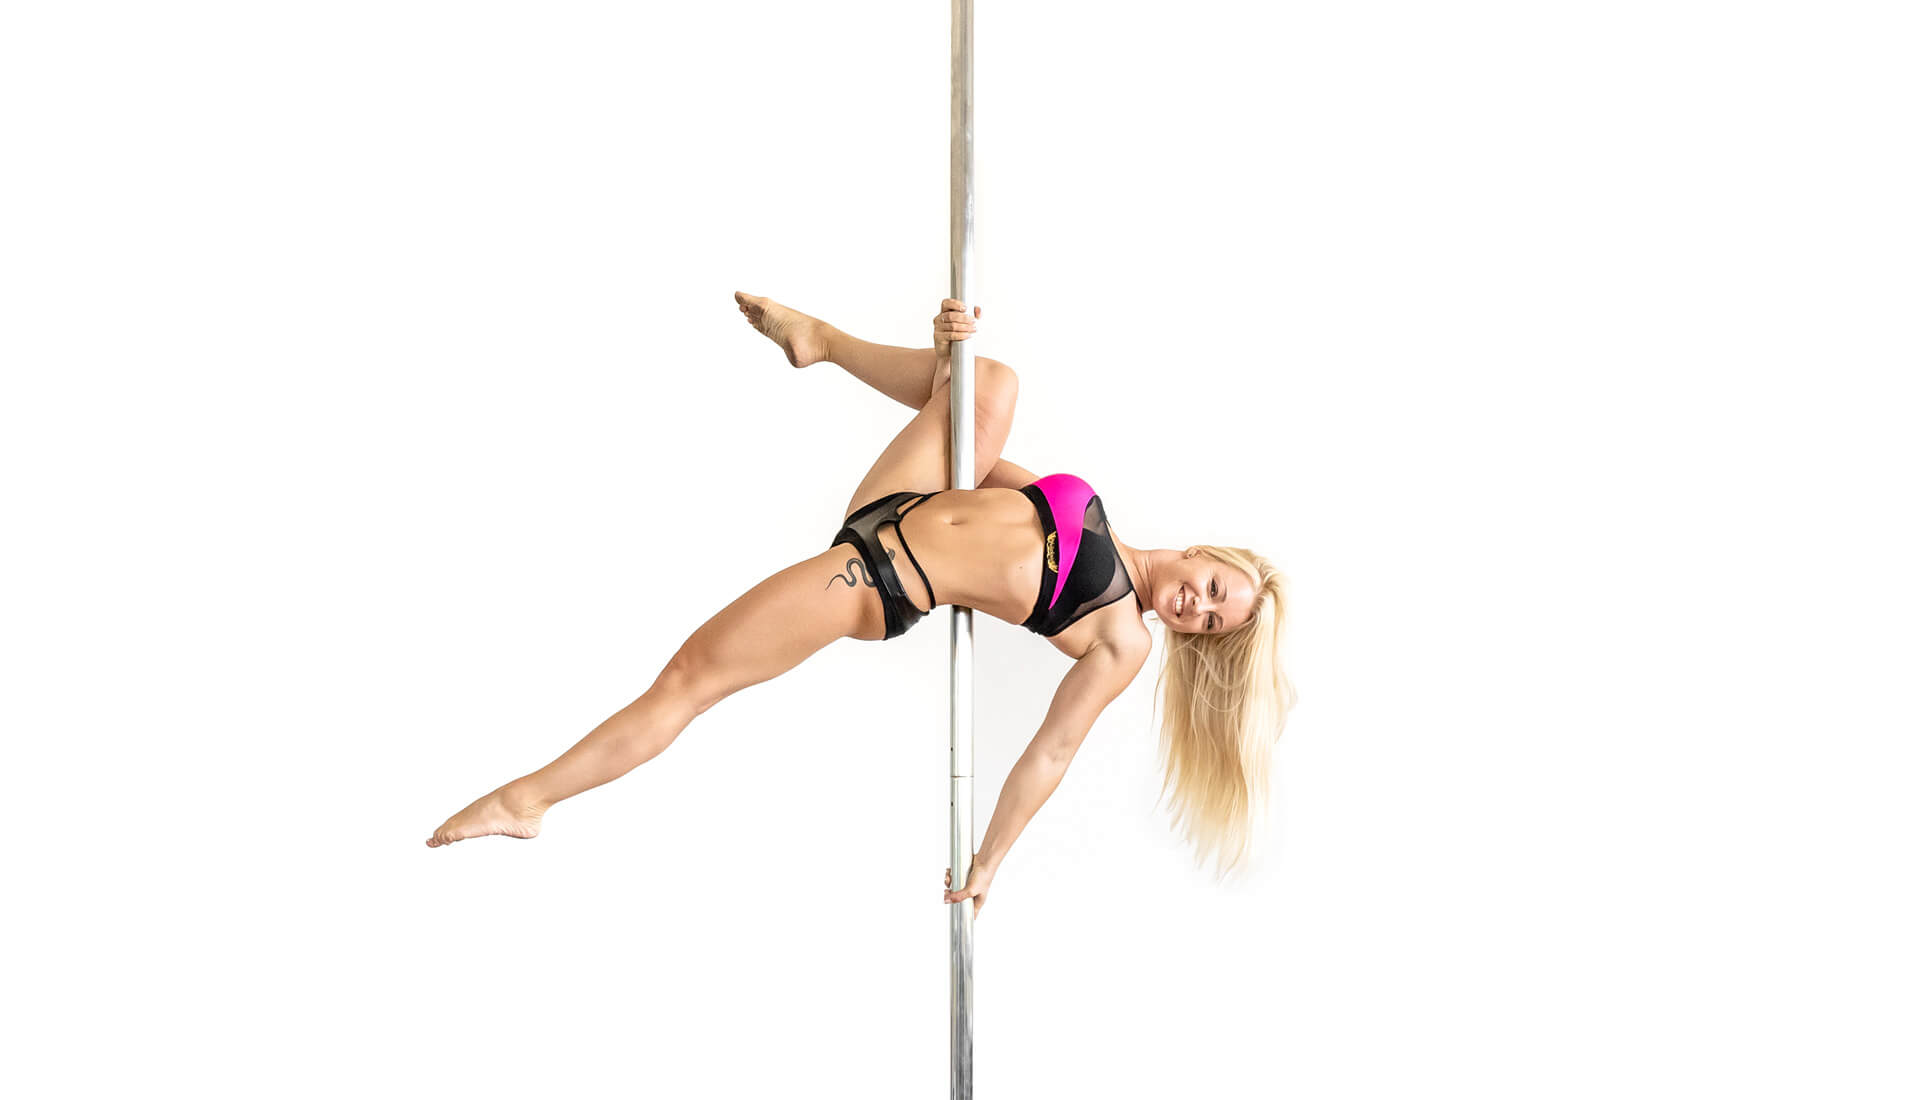 Pali pole dance italia